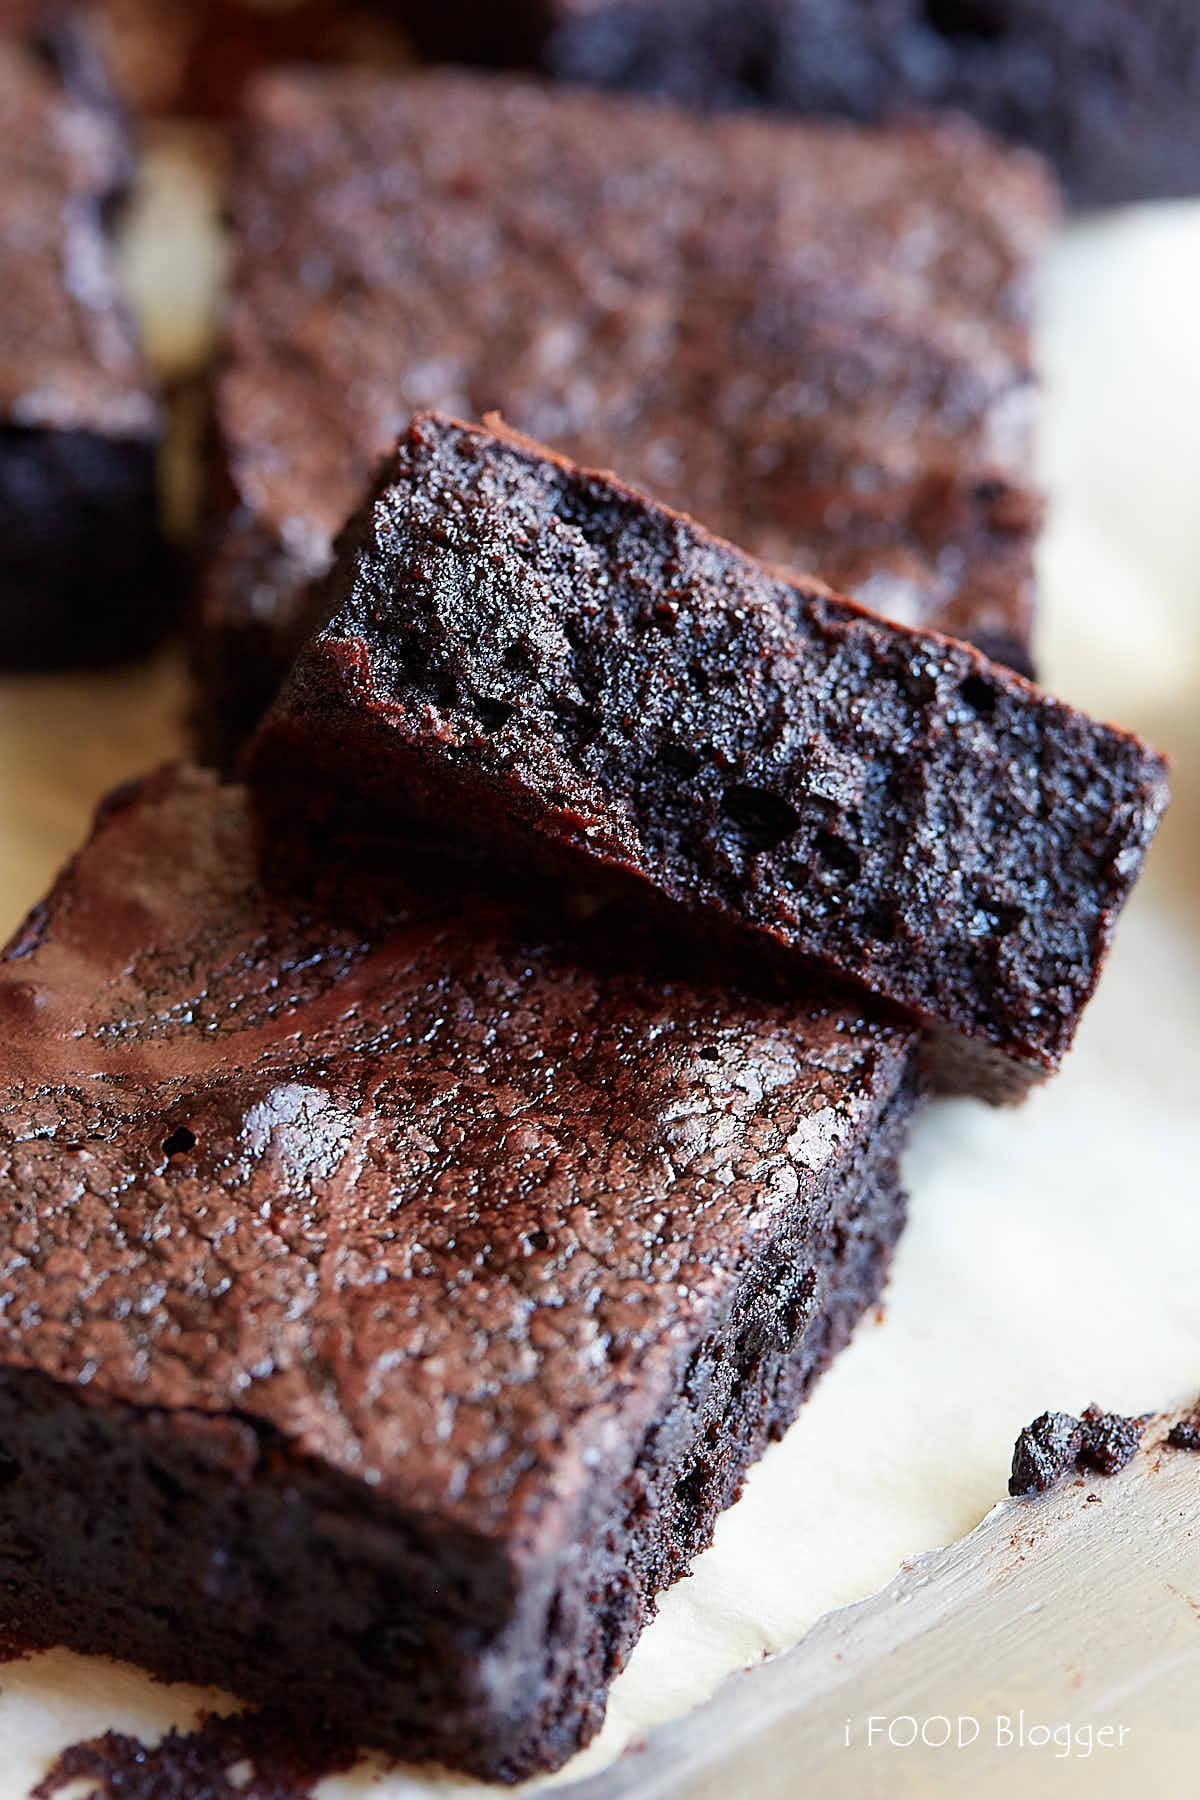 Brownies made from scratch, flourless and gluten-free, cut into pieces, set on a piece of paper.